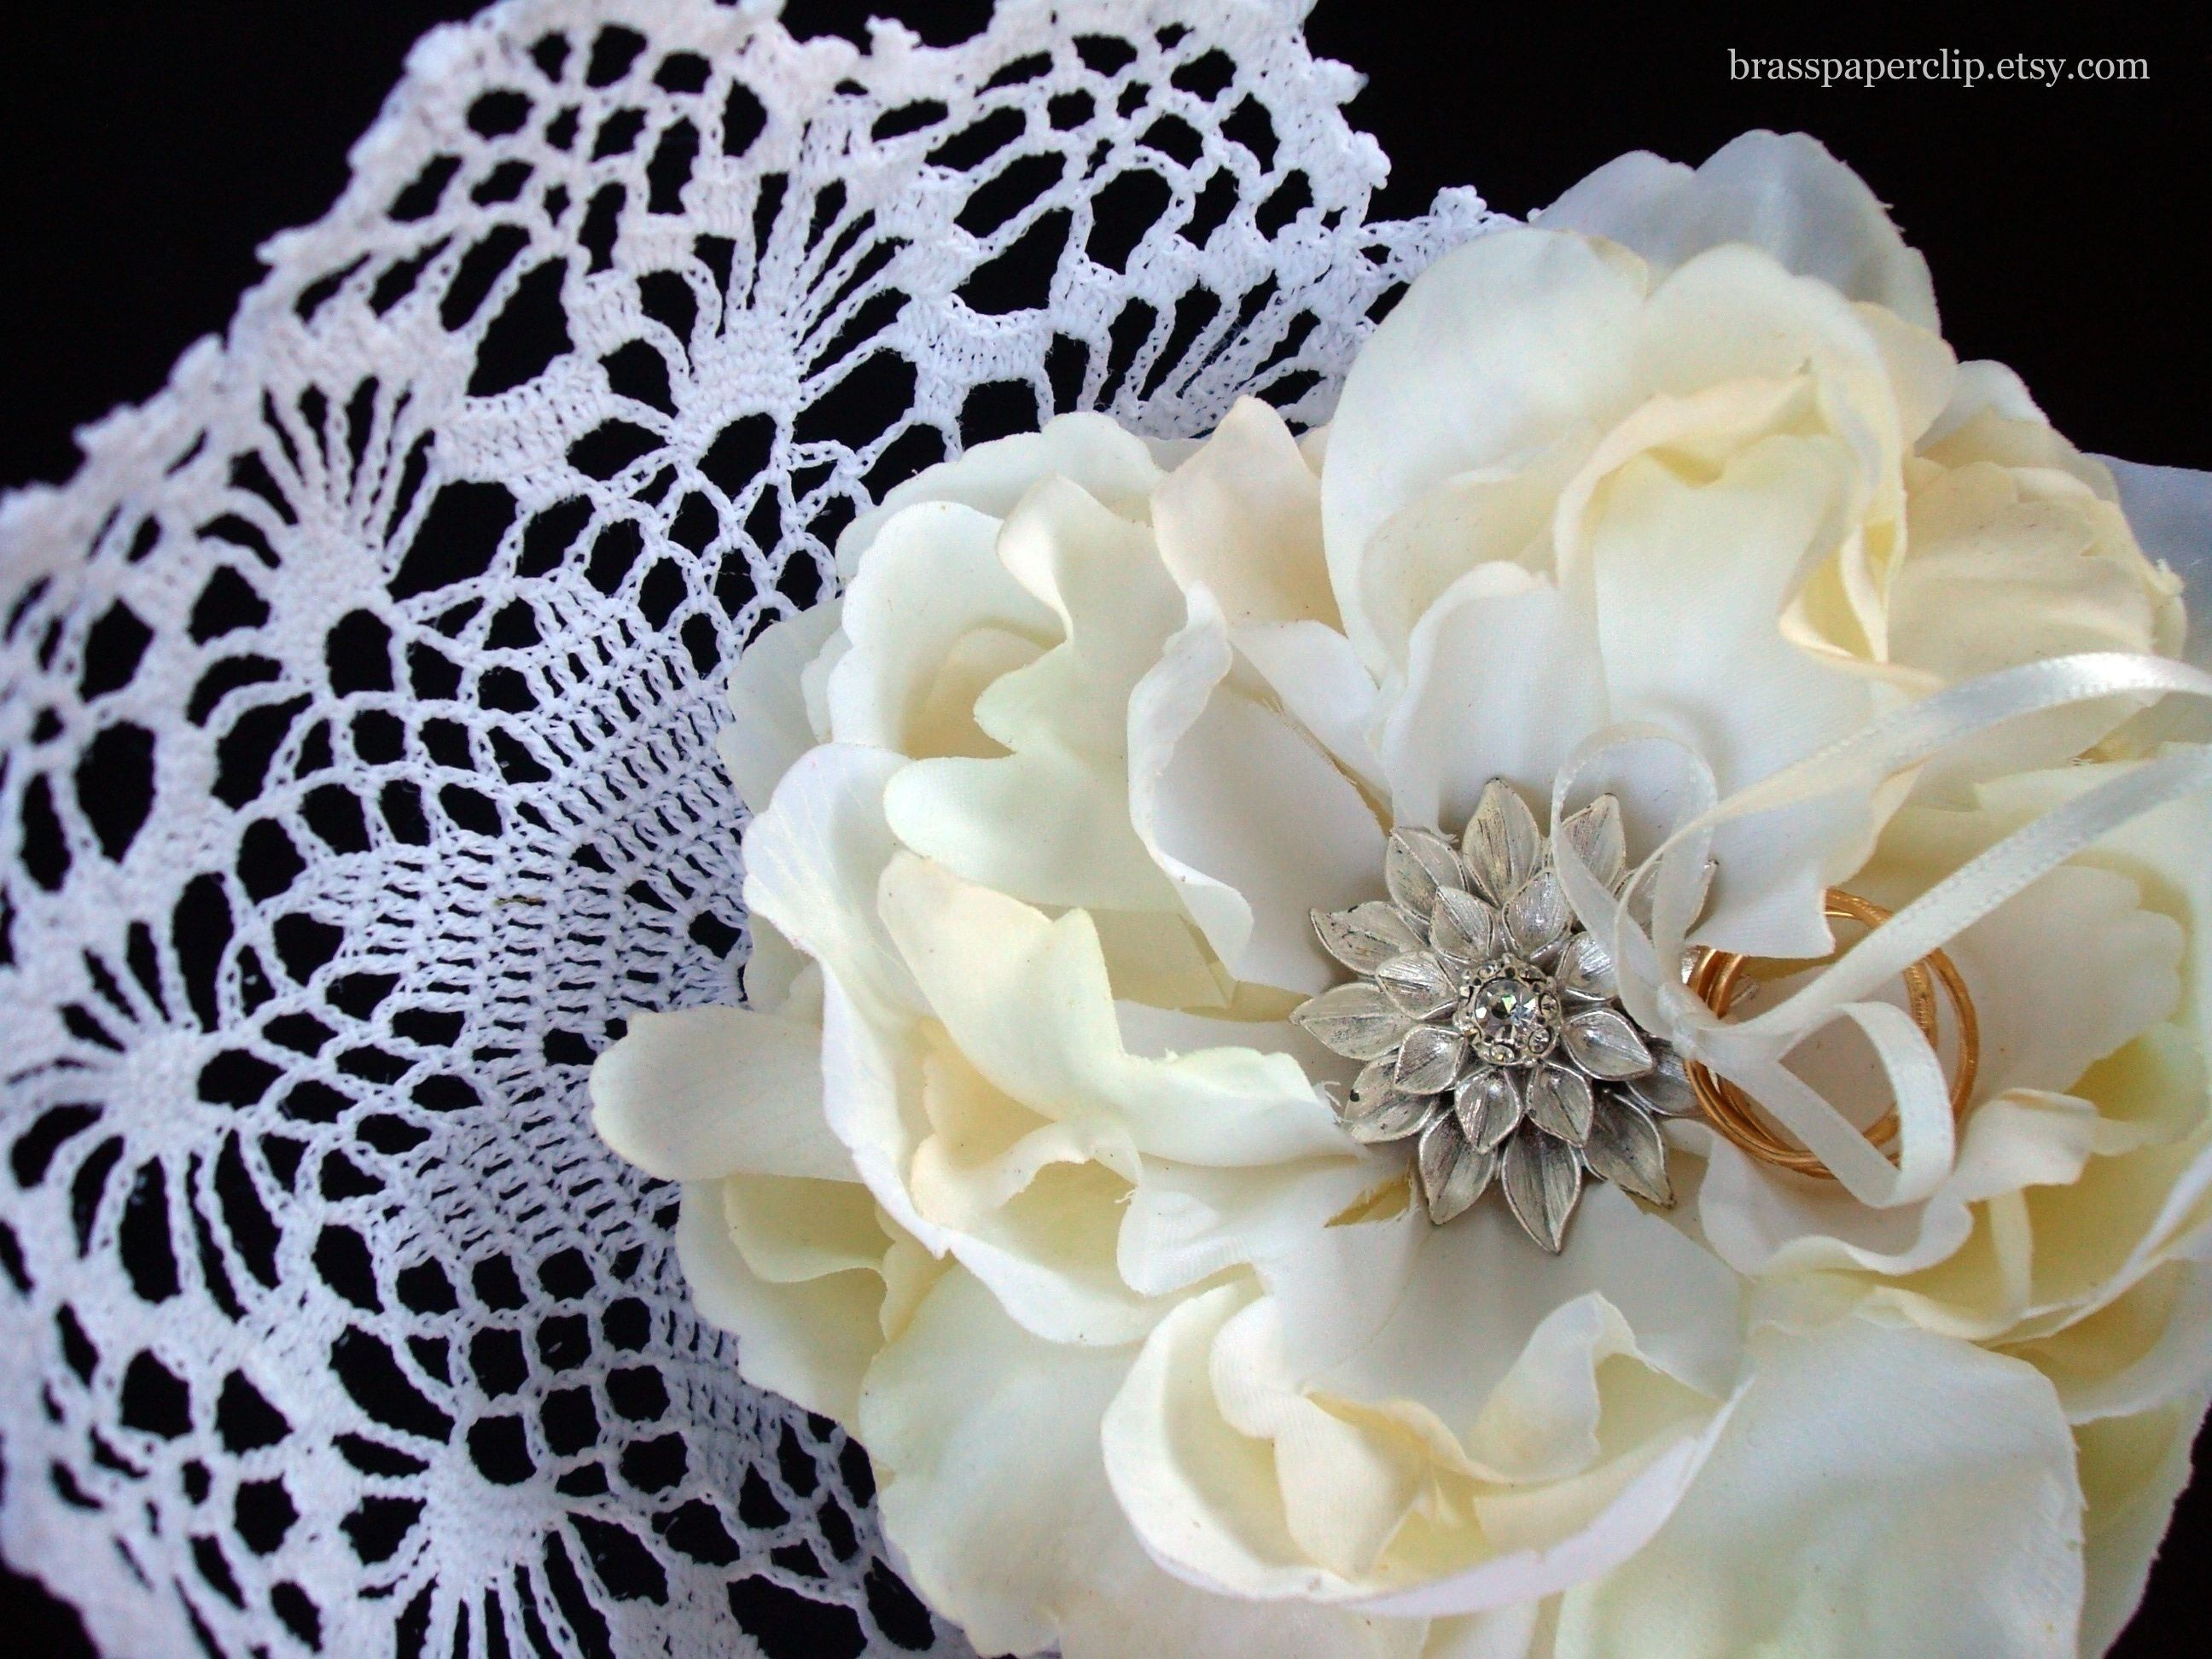 Ceremony, Flowers & Decor, Jewelry, Cushion Cut Engagement Ring, Vintage, Ring, Of, Unique, Basket, Pillow, Bearer, A, Cushion, Peony, One, Kind, Convertible, Pin, Brass paperclip, Paperclip, Brass, Doily